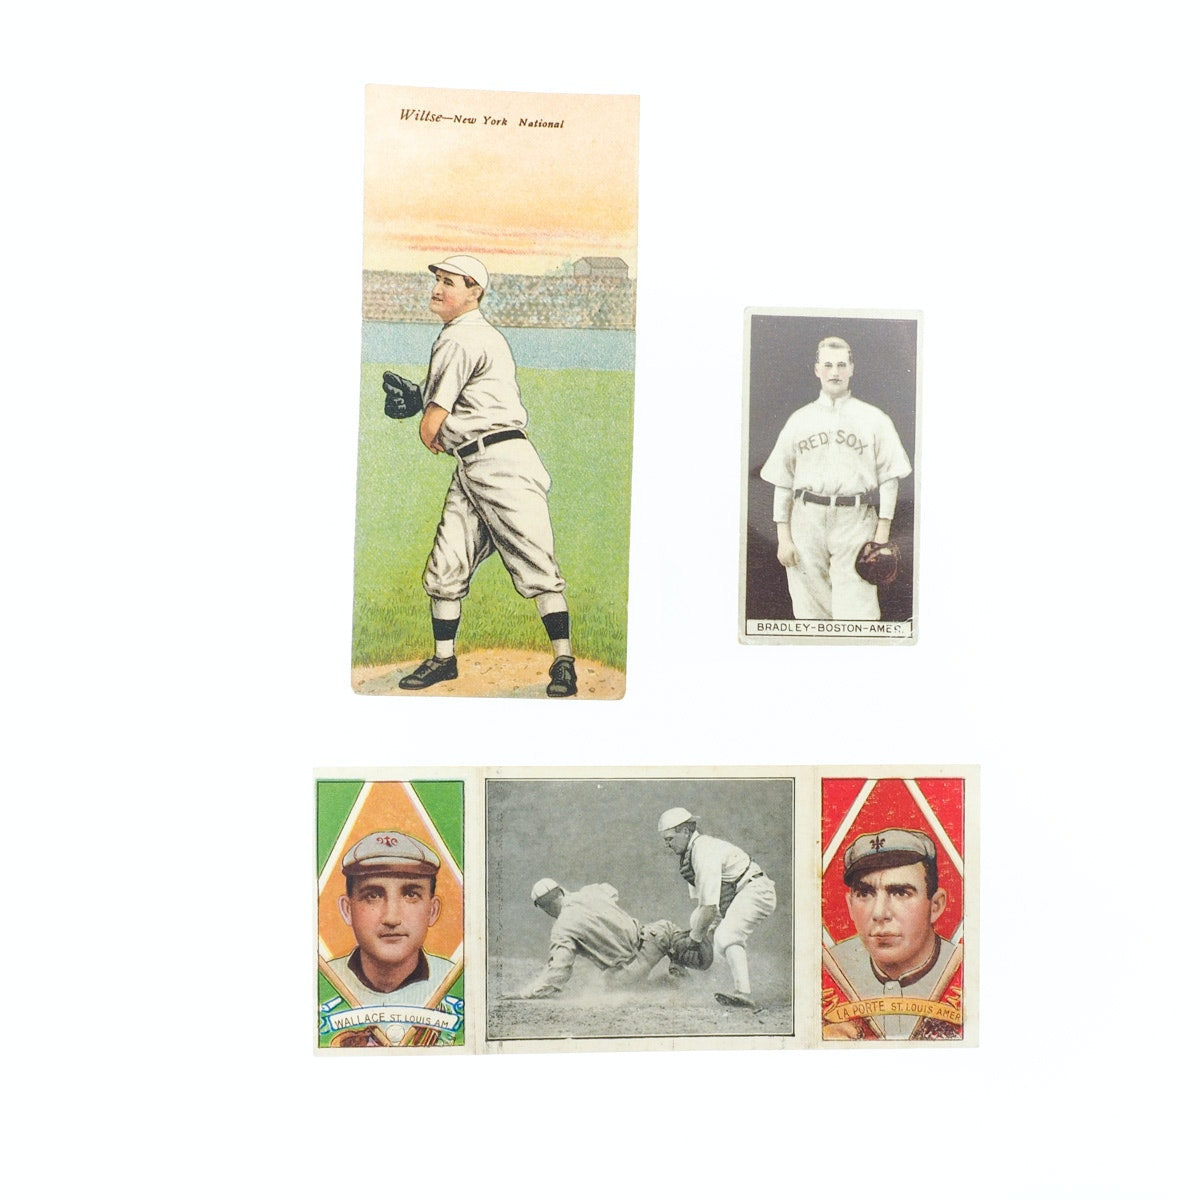 """""""A Close Play at Home Plate"""" and Other Early 20th Century Baseball Cards"""